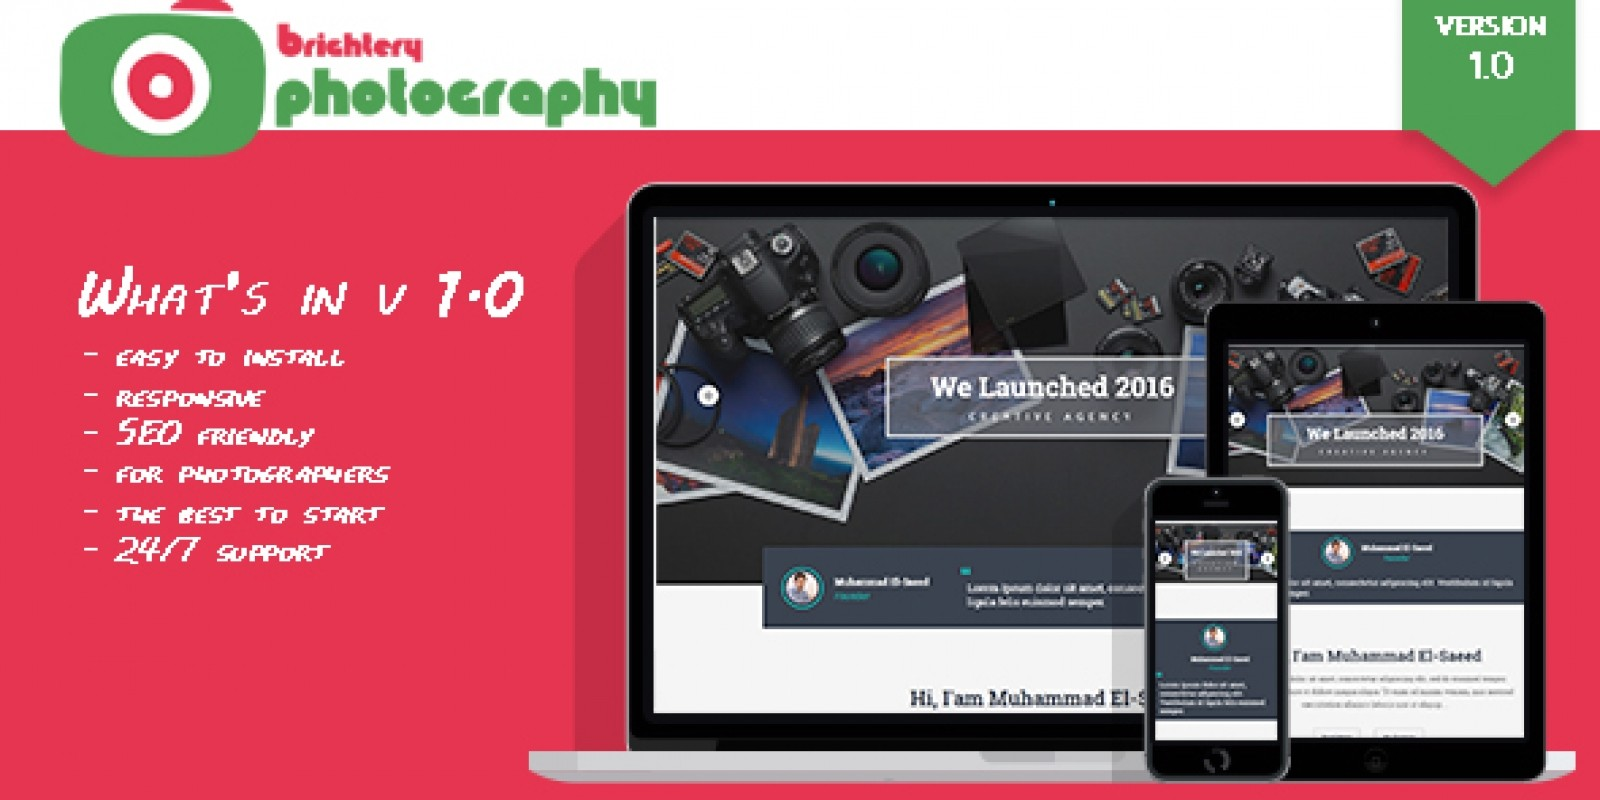 Cms Script Brighter Photography Cms Php Script